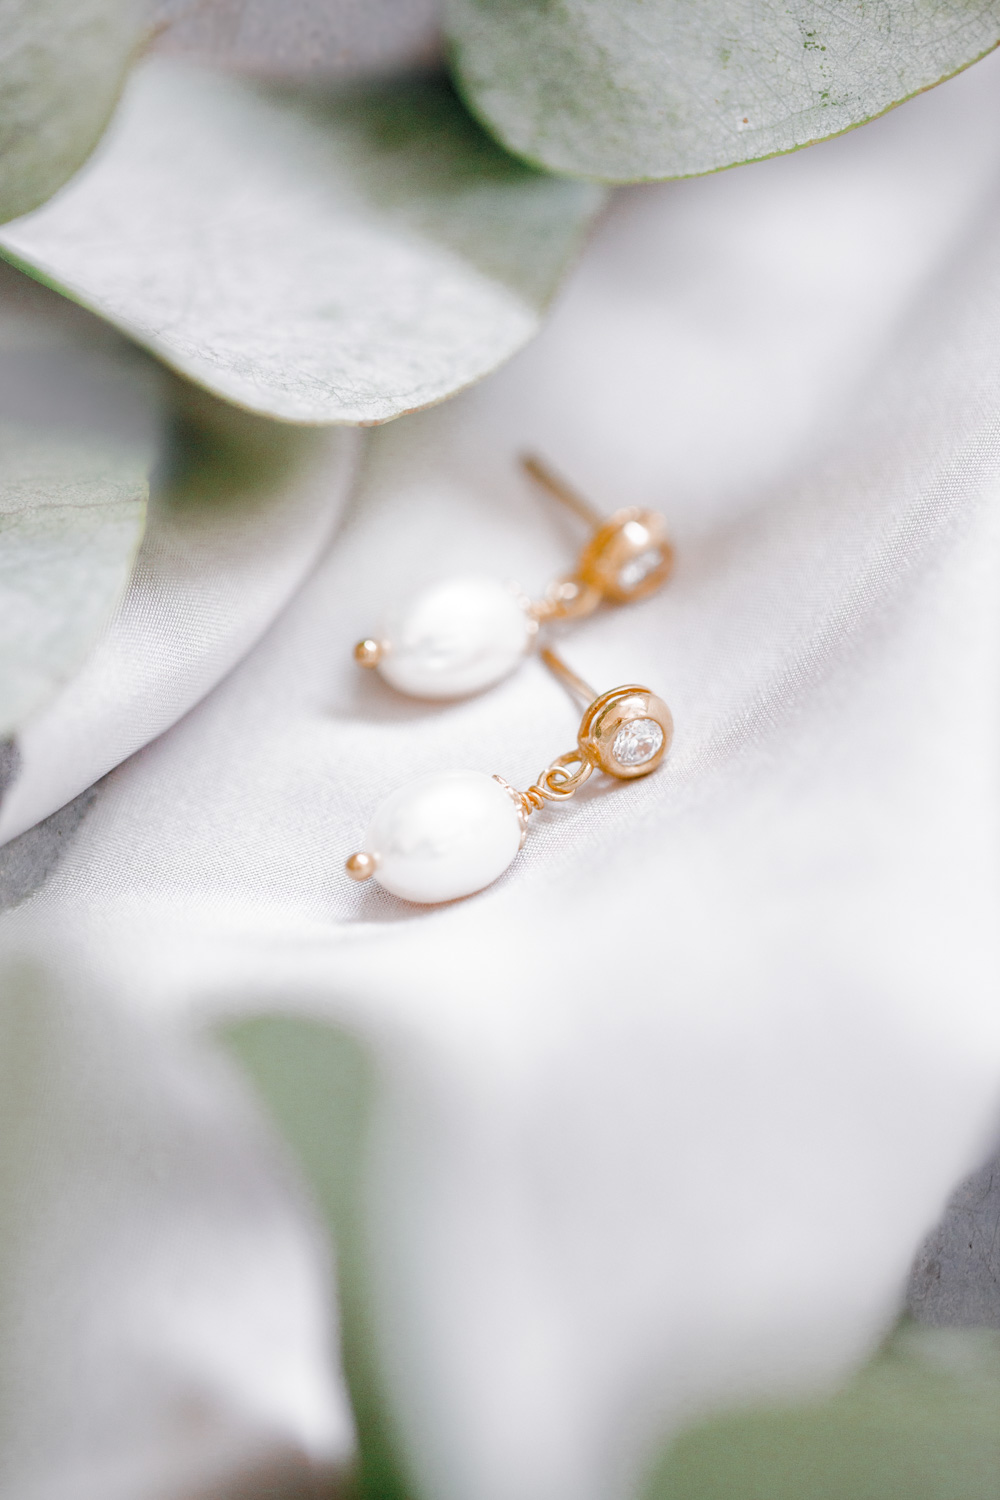 These classically pure pearl stud earrings, with framed zirconia crystals, prove that bridal jewellery does not always have to be large and eye-catching to leave an impression. The earrings match every look and give the wearer a feeling of natural beauty and timeless elegance.